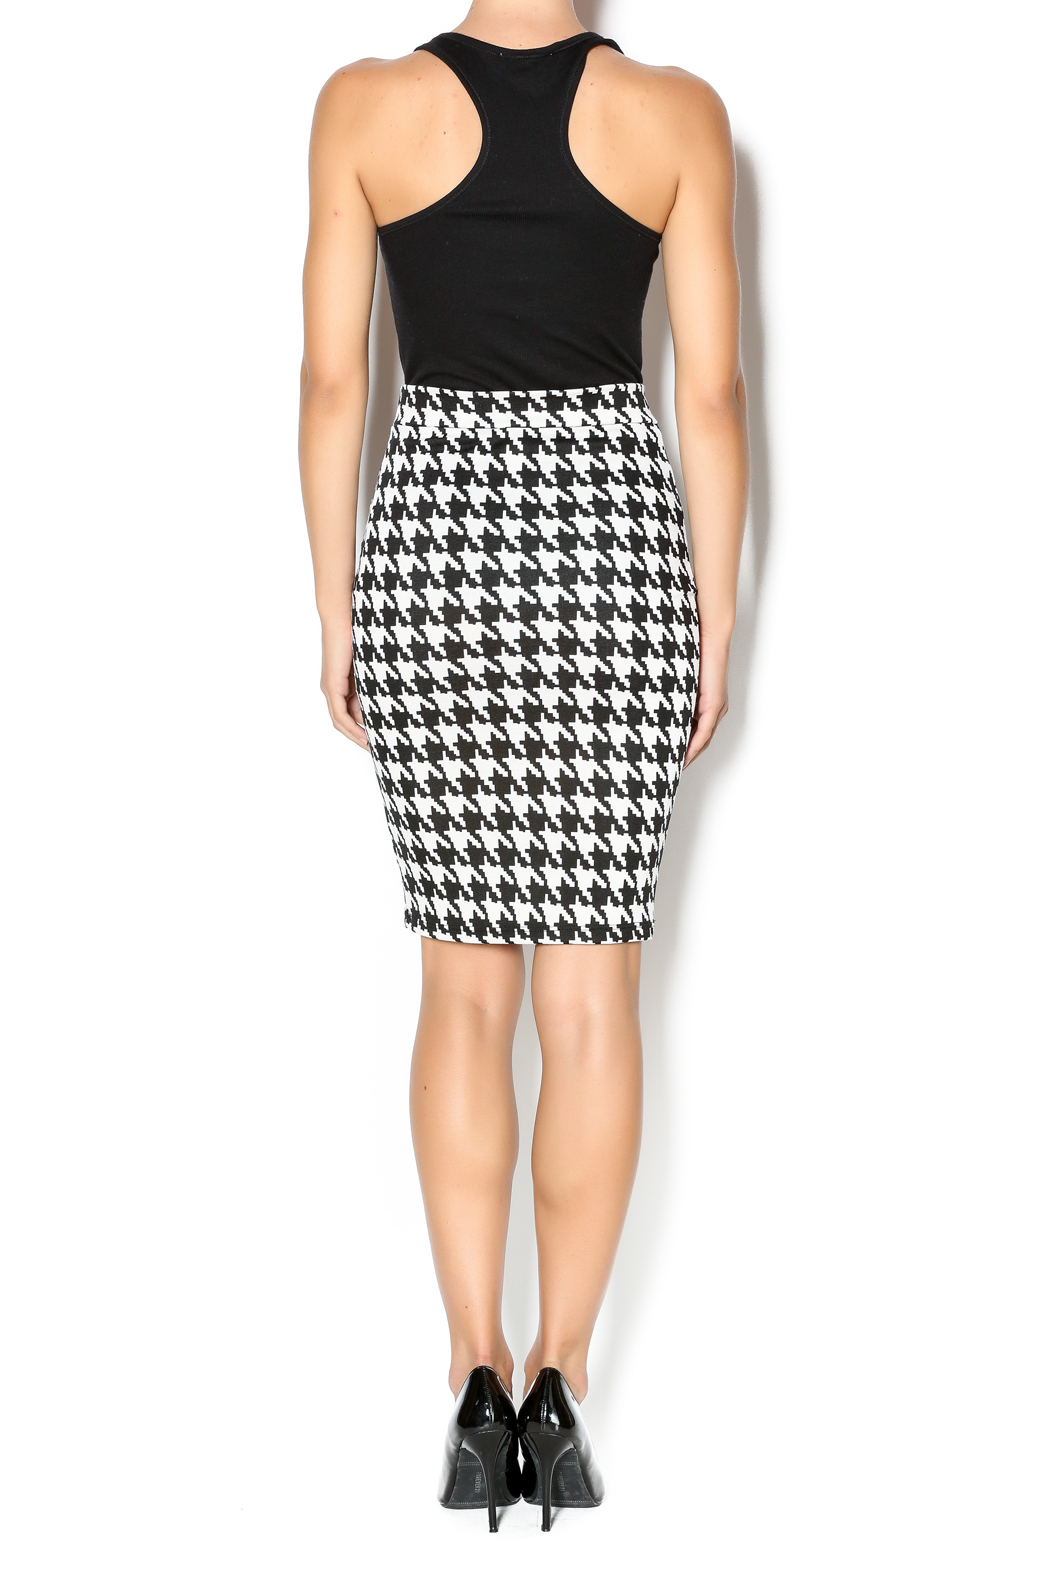 Top 10 Houndstooth Pencil Skirt from Alabama by Flaunt Boutique ...